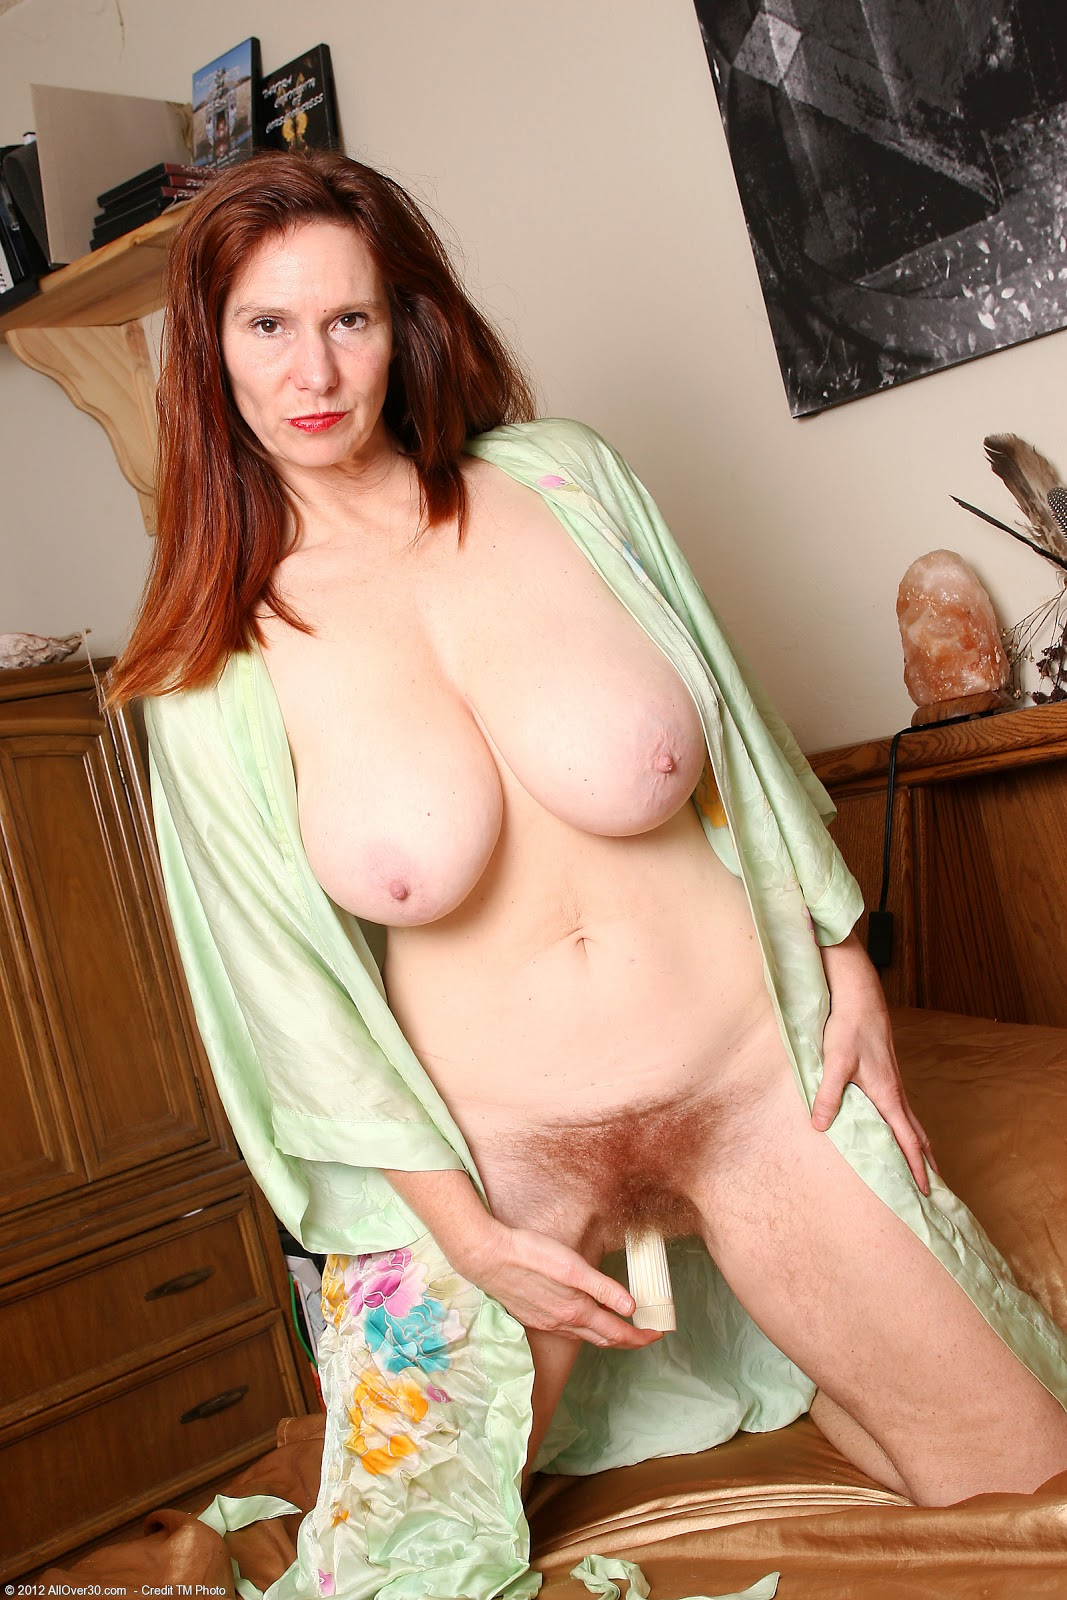 Middle aged indian women in nude